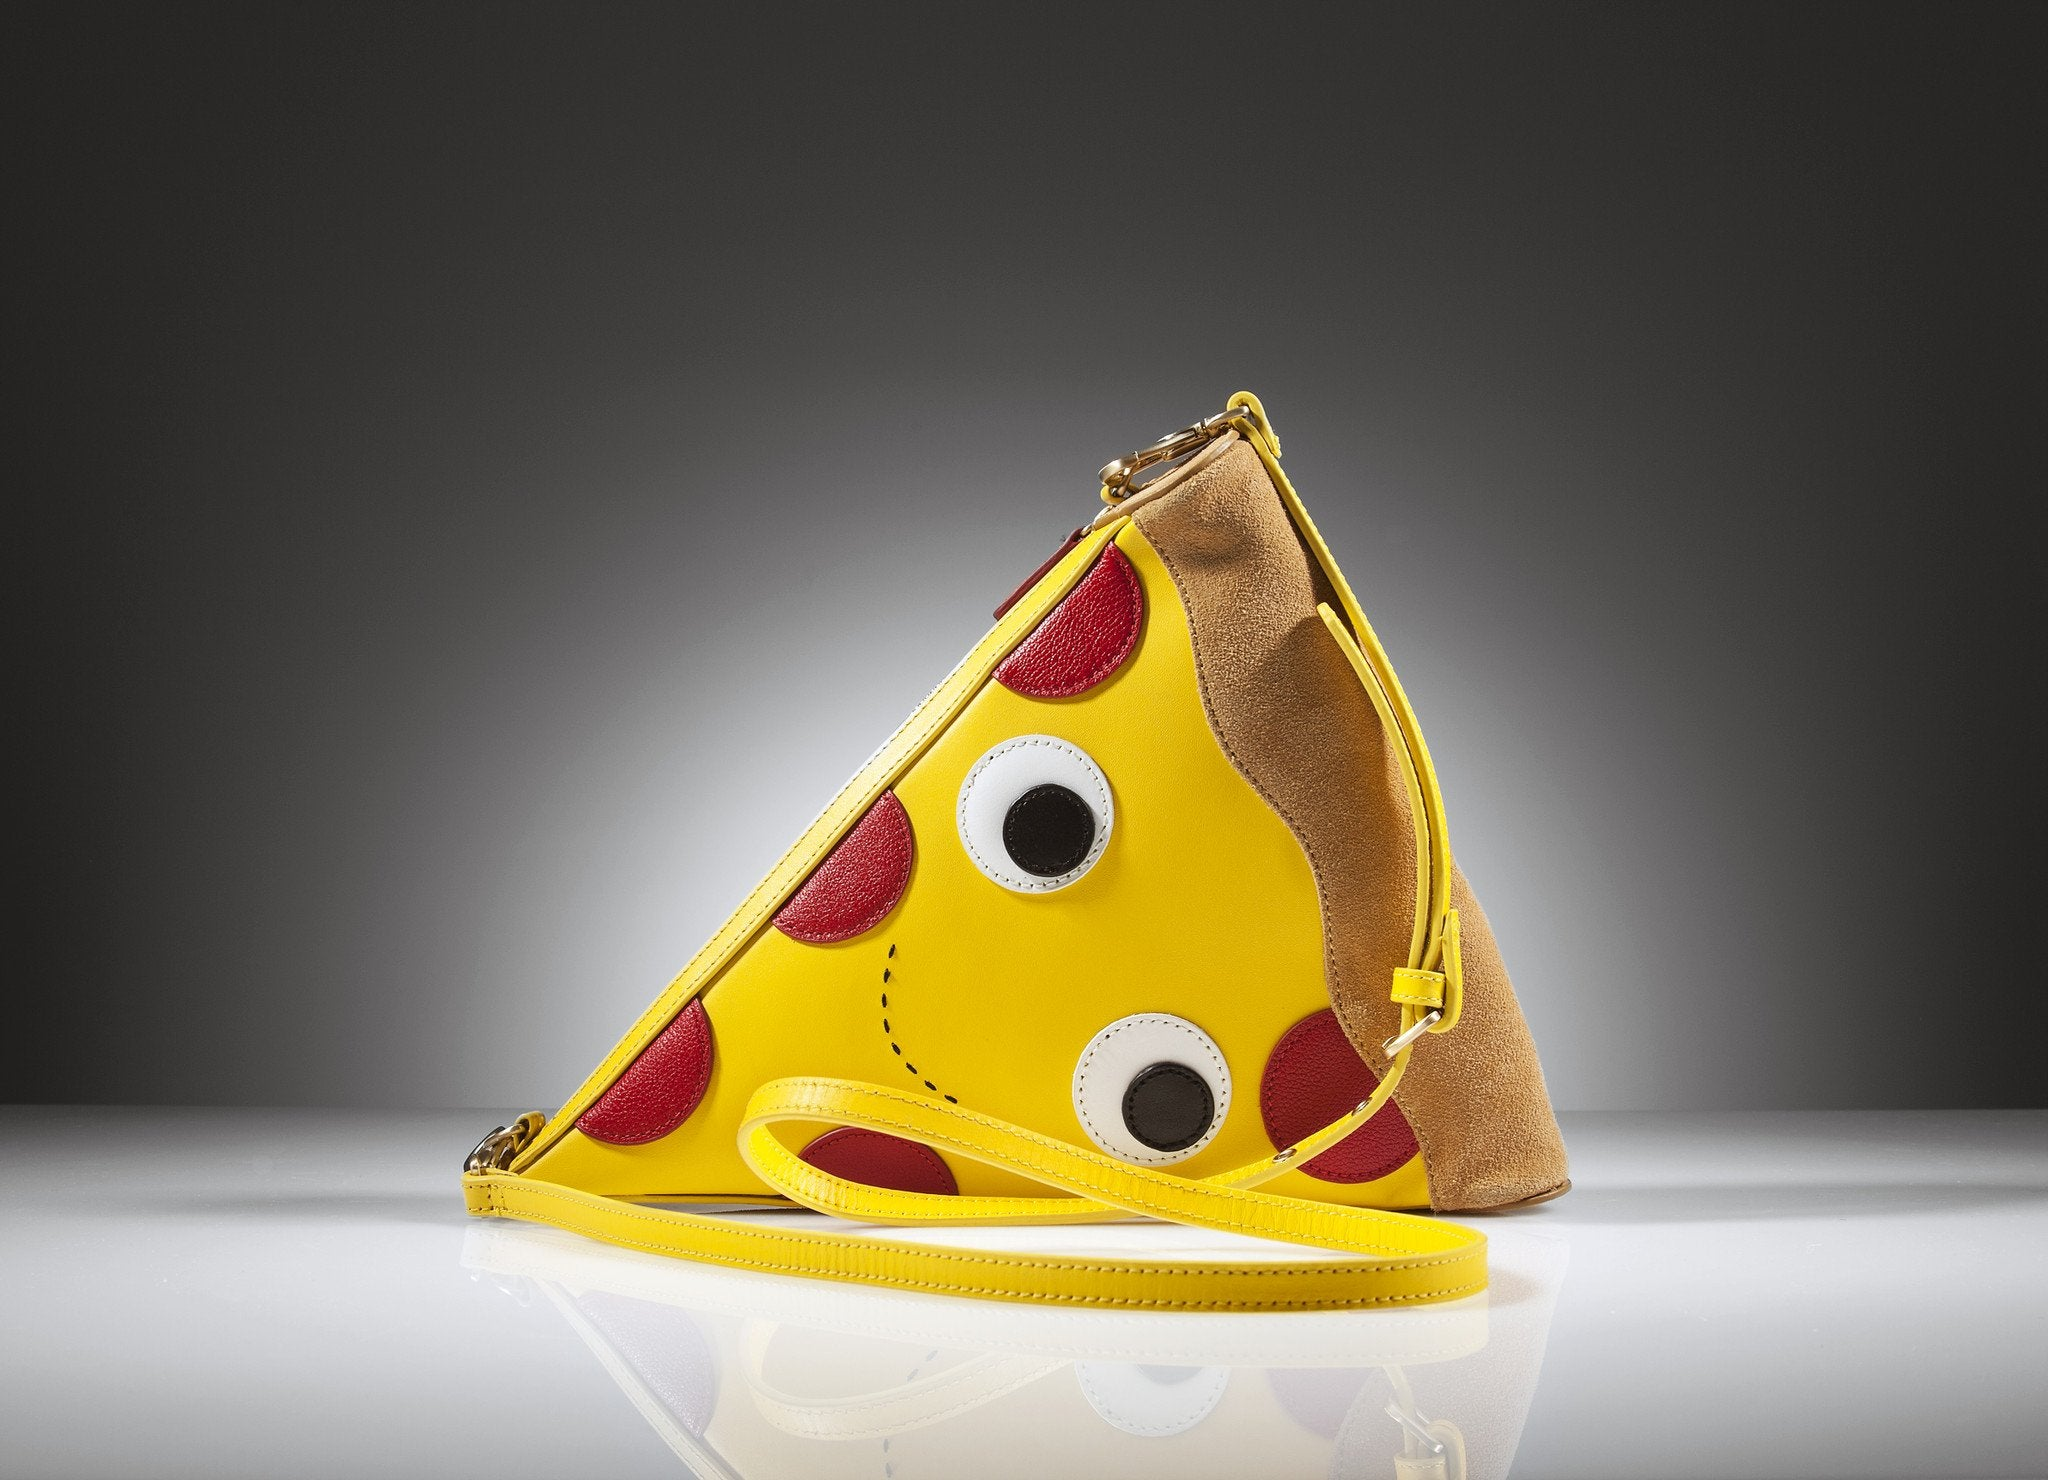 Yummy World Leather Pizza Clutch Purse Bag - Kidrobot - 2